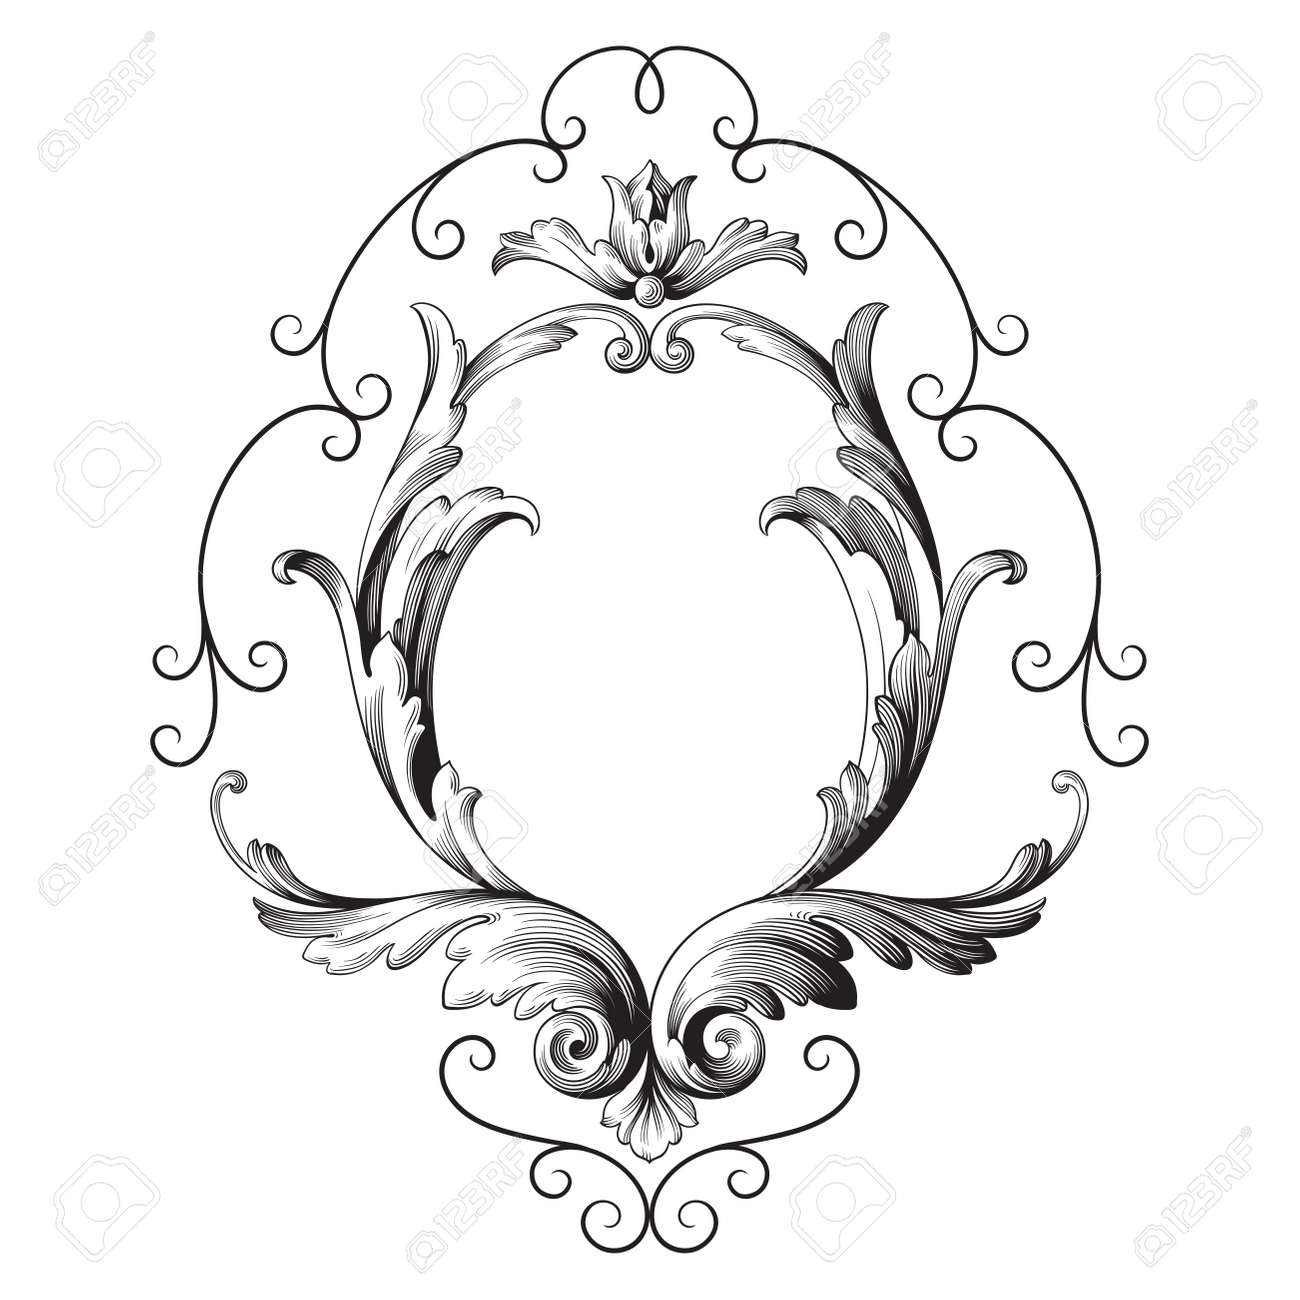 Classical baroque vector of vintage element for design decorative classical baroque vector of vintage element for design decorative design element filigree calligraphy vector junglespirit Image collections